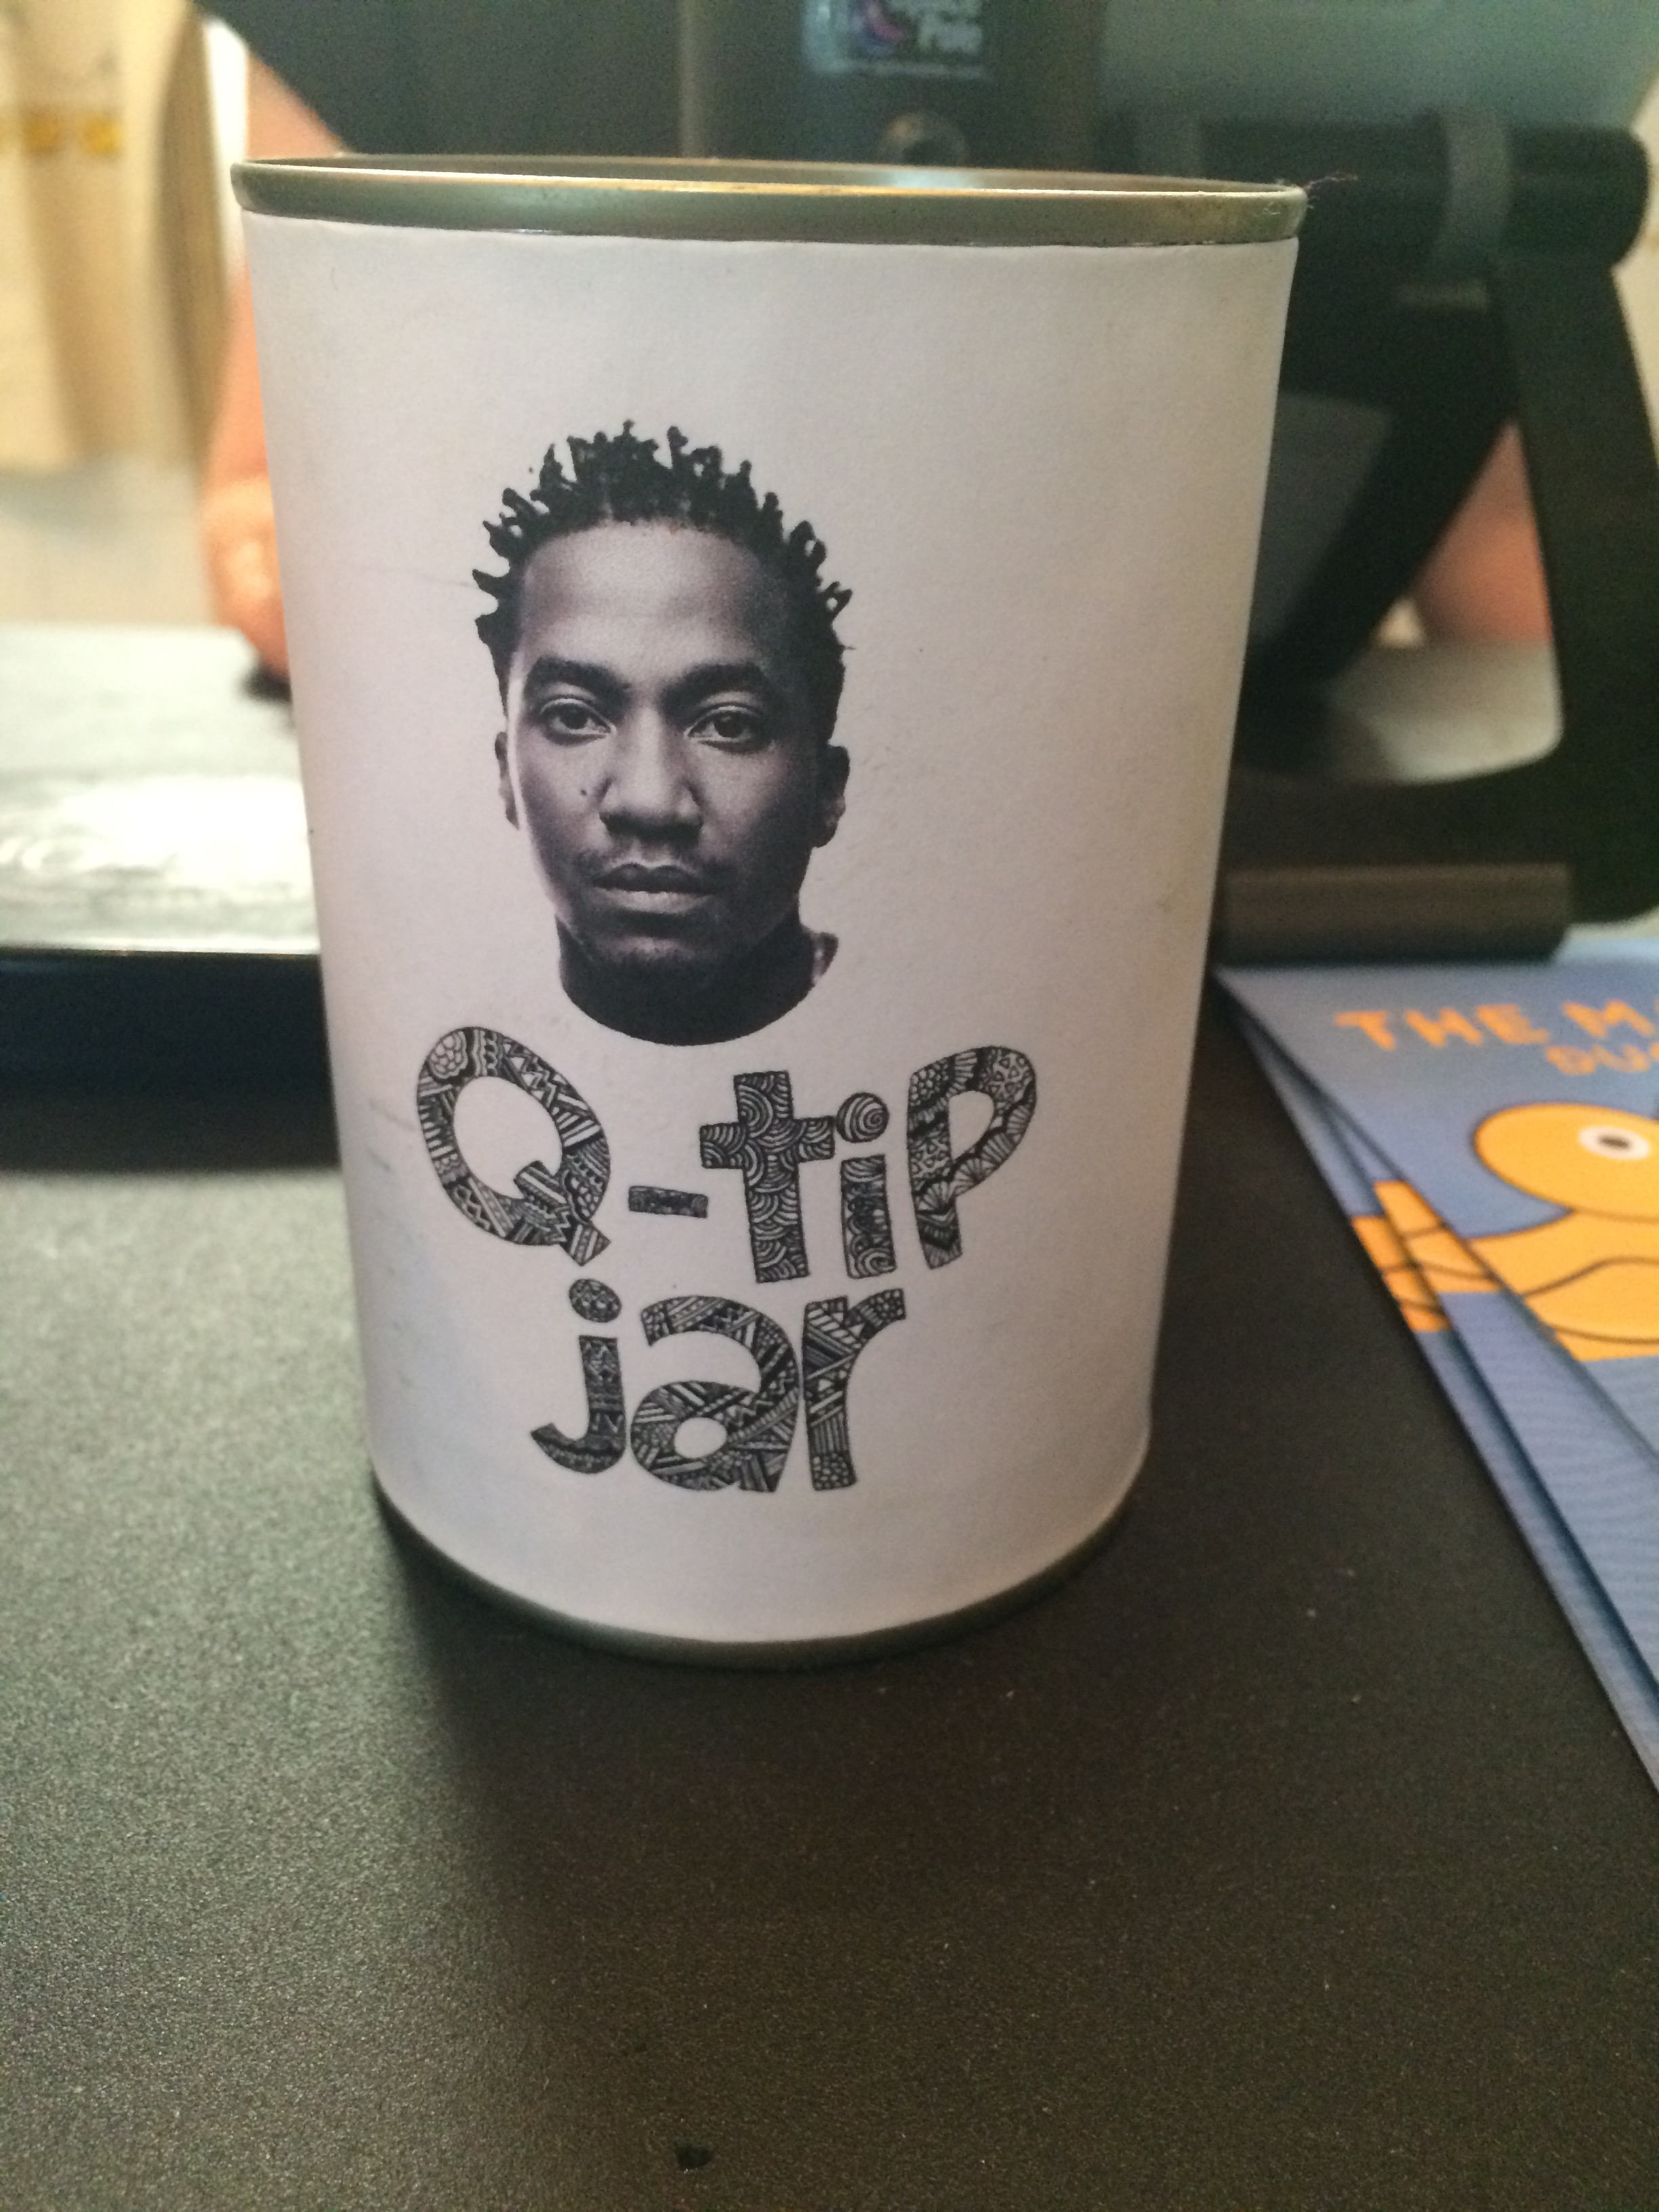 The Q Tip Jar at the brilliant Hip Hop Chip Shop in Manchester